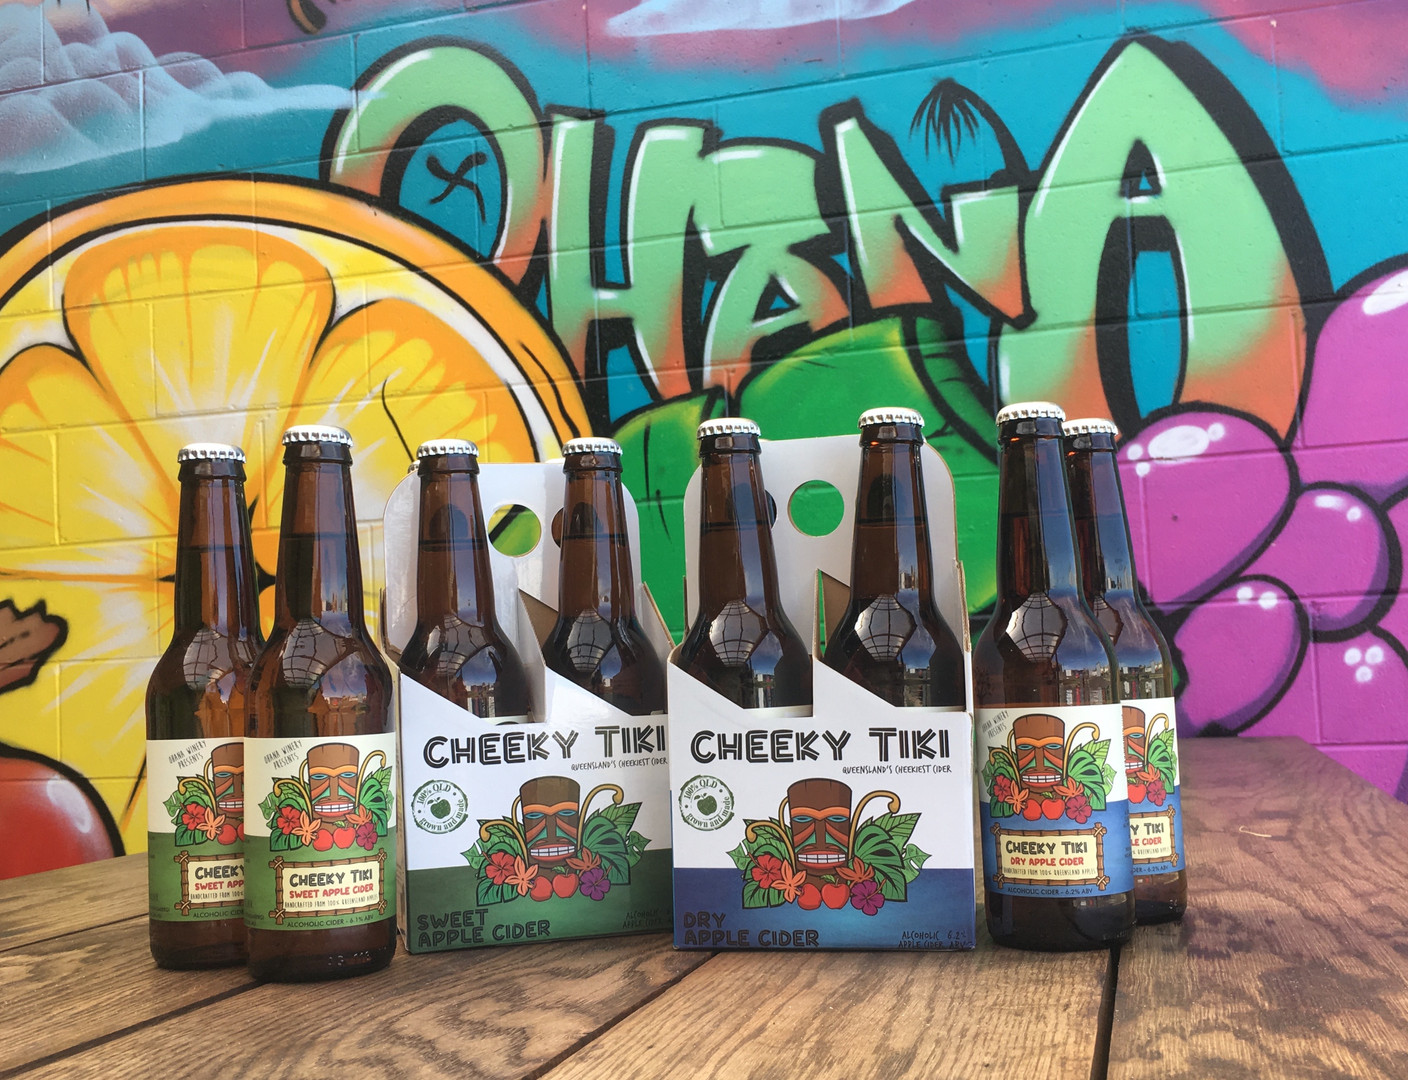 A group of cider bottles in four pack packaging on a brown table with a colourful mural grafitti background